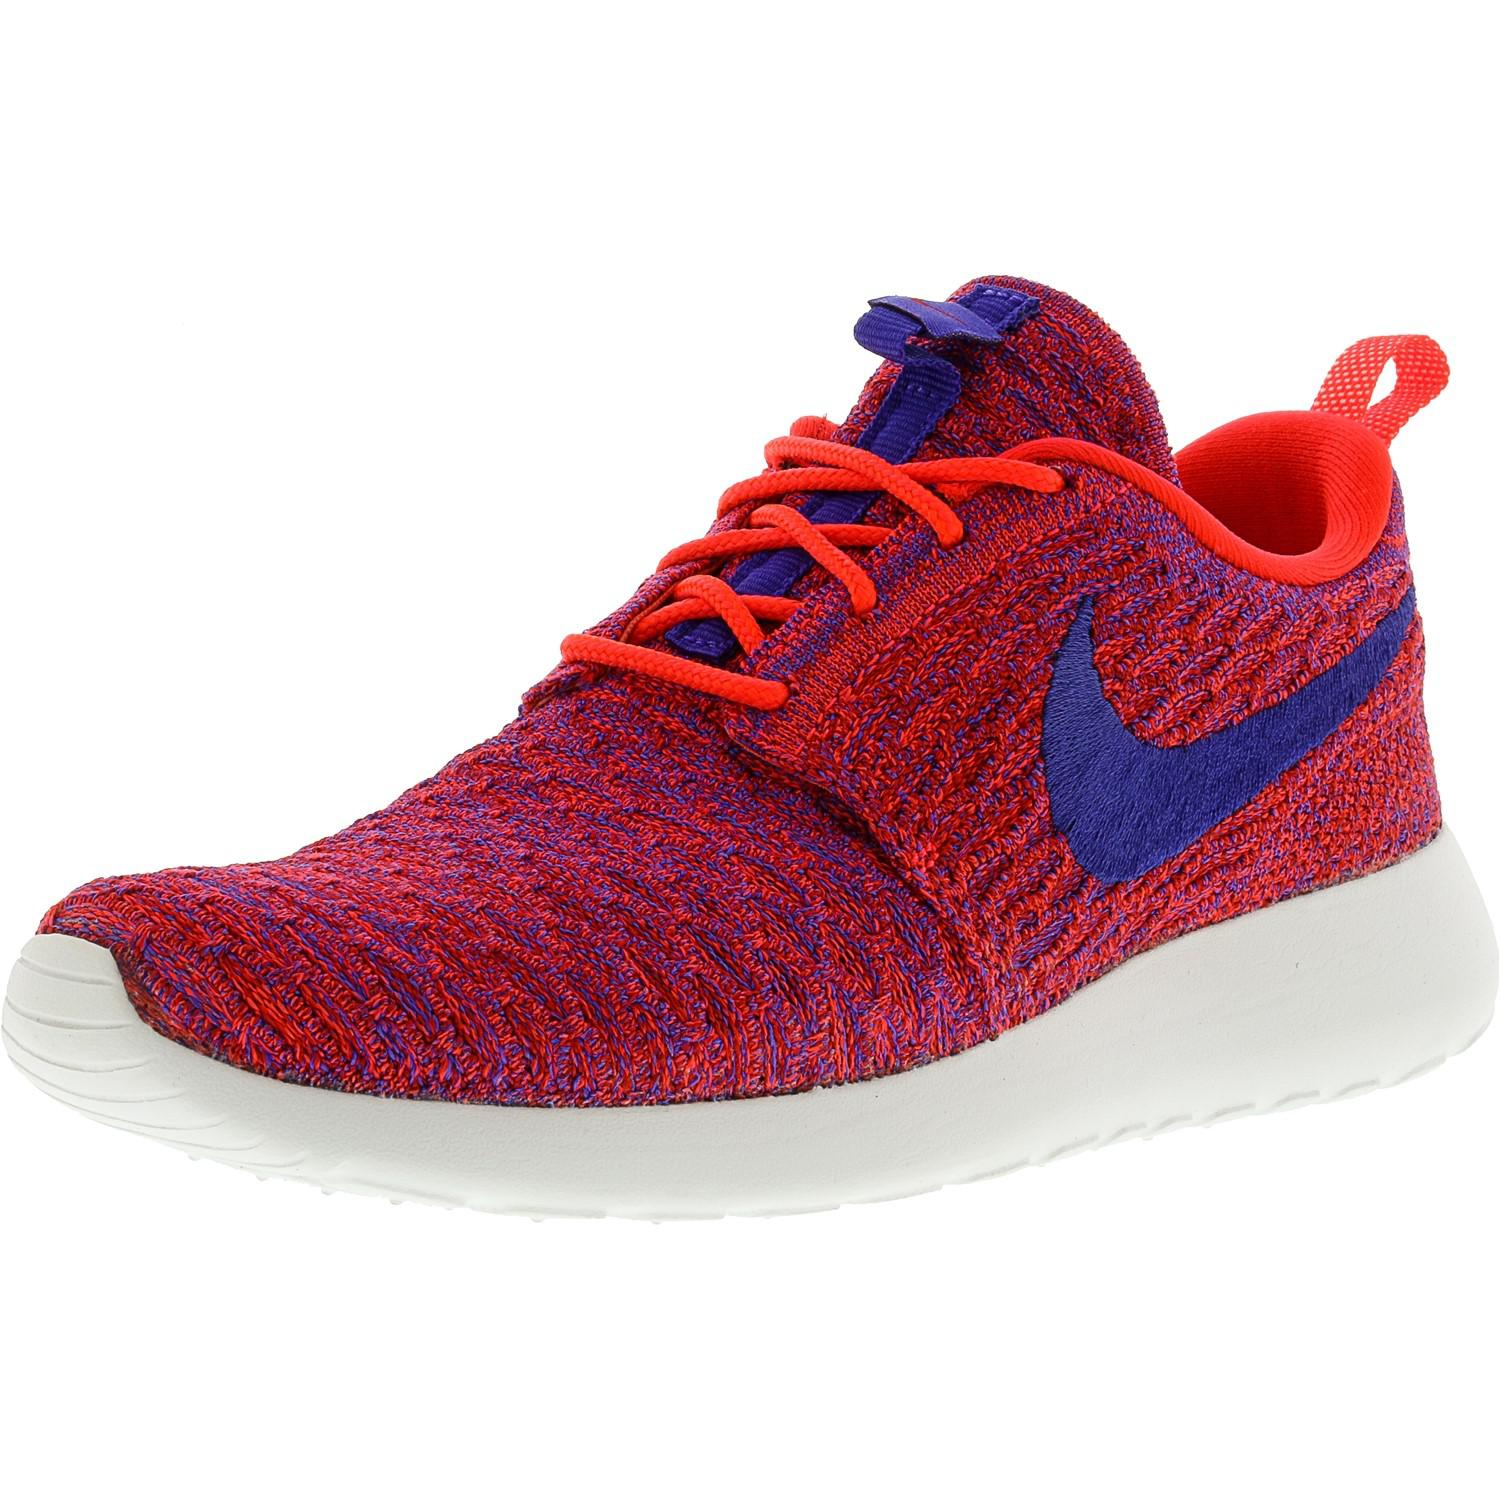 650feaa92f275 ... shoes sz 9 74515 79373  czech lyst nike roshe one flyknit ankle high  running shoe 8m in red 4db77 d6b52